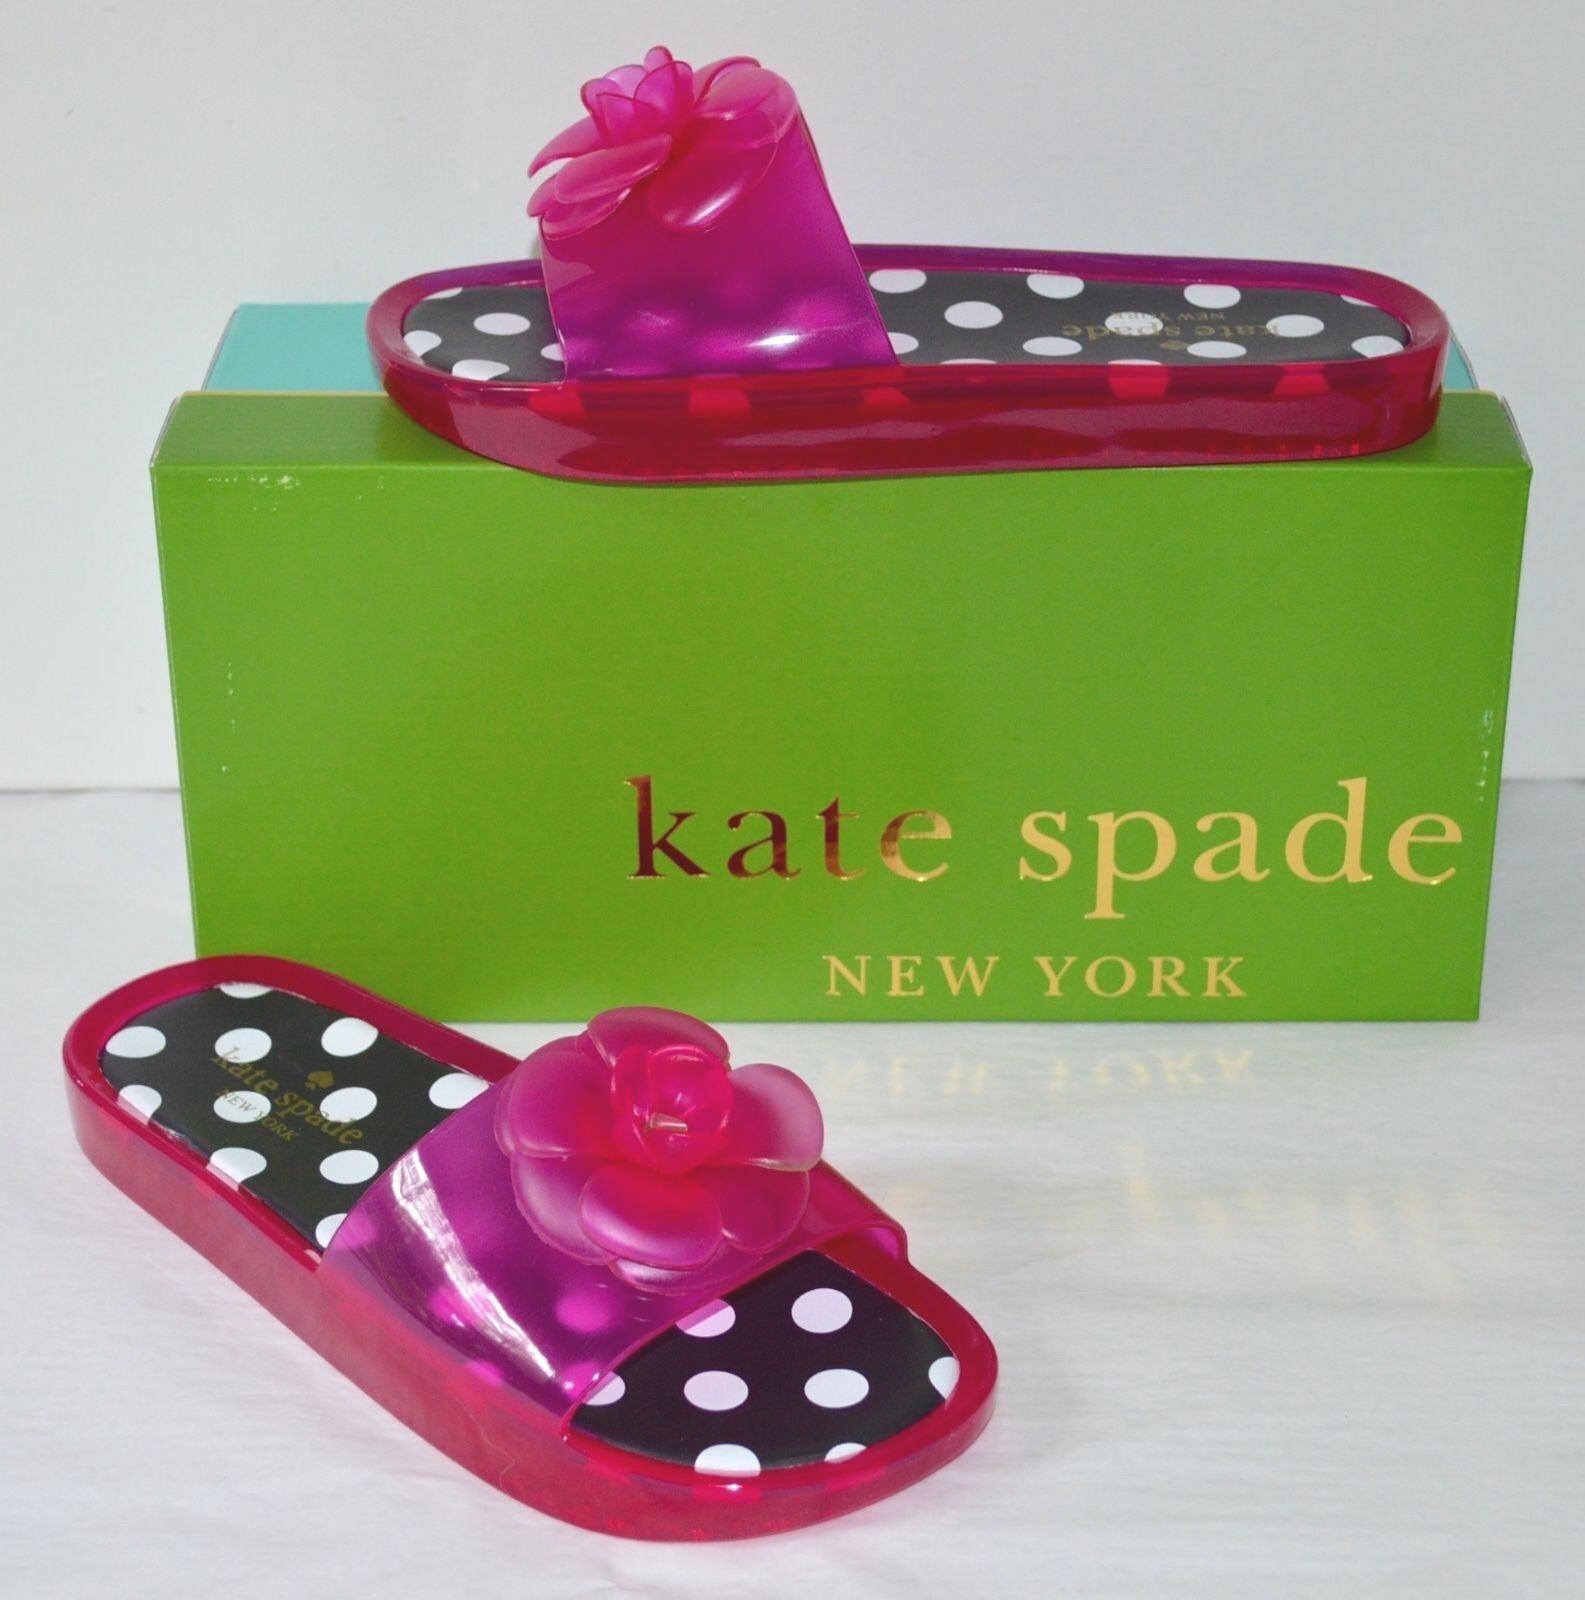 Kate Spade Splash Pink Swirl Transparent Jelly Slide Sandal Polka Dot 8 Norton Secured Powered By Verisign